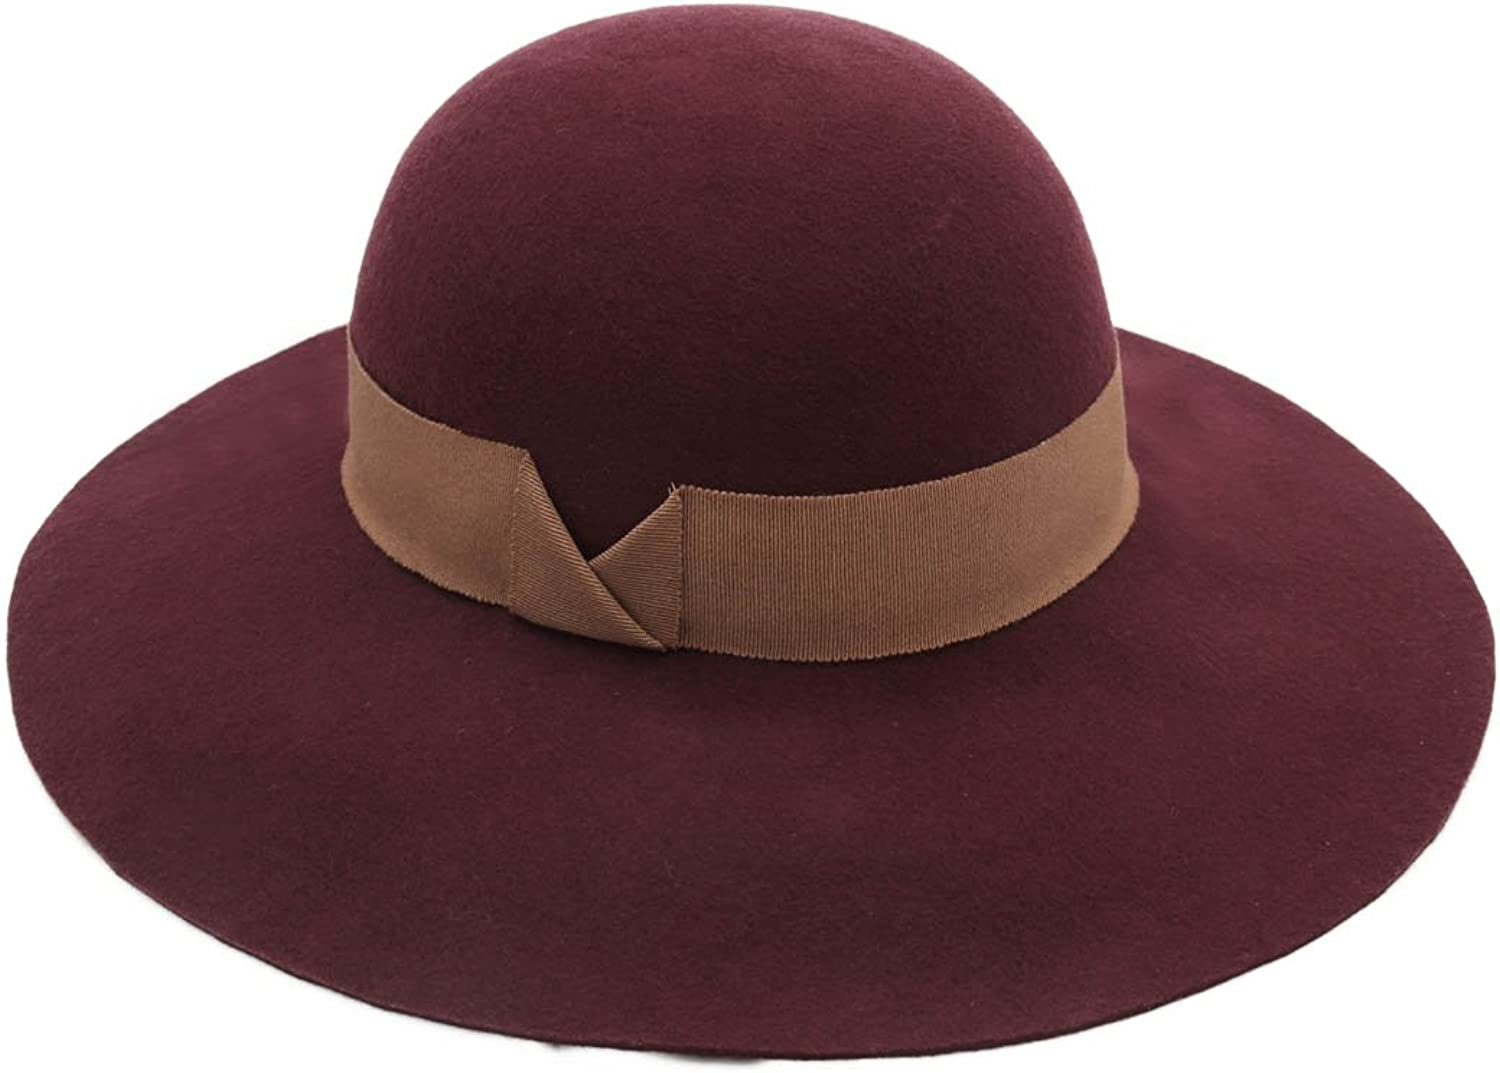 Marzi Women's Stene Wool Felt Cloche Hat